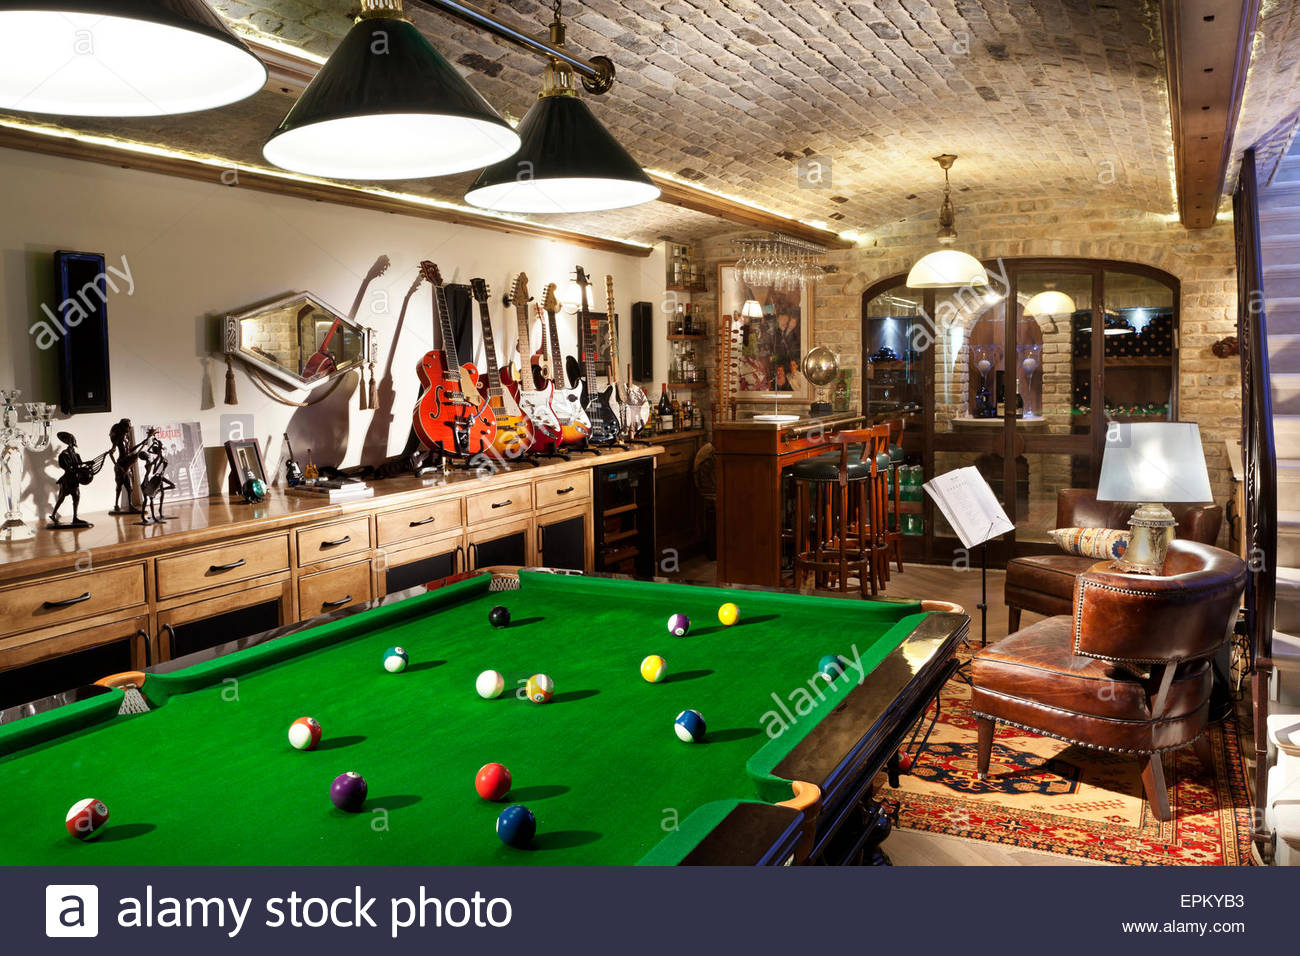 Games Room With Pool Table, Bar And Electric Guitar Collection In Country  Villa, Moshav Bnaya, Israel.